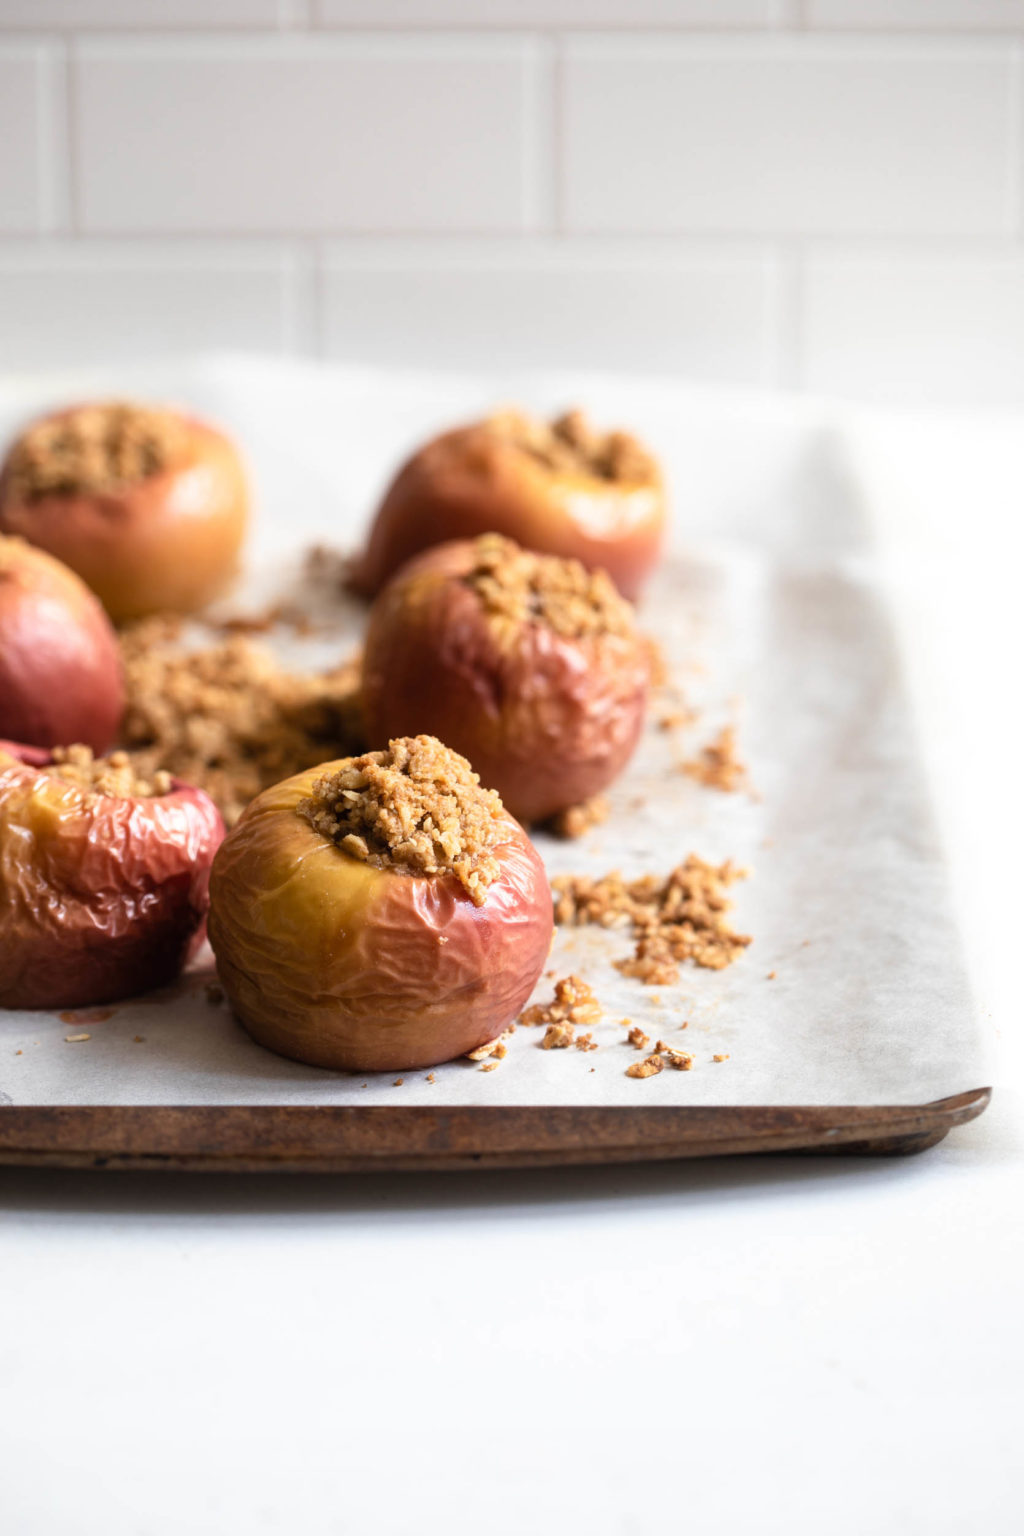 A parchment lined baking sheet holds six baked stuffed apples, with streusel crumbs on the parchment.